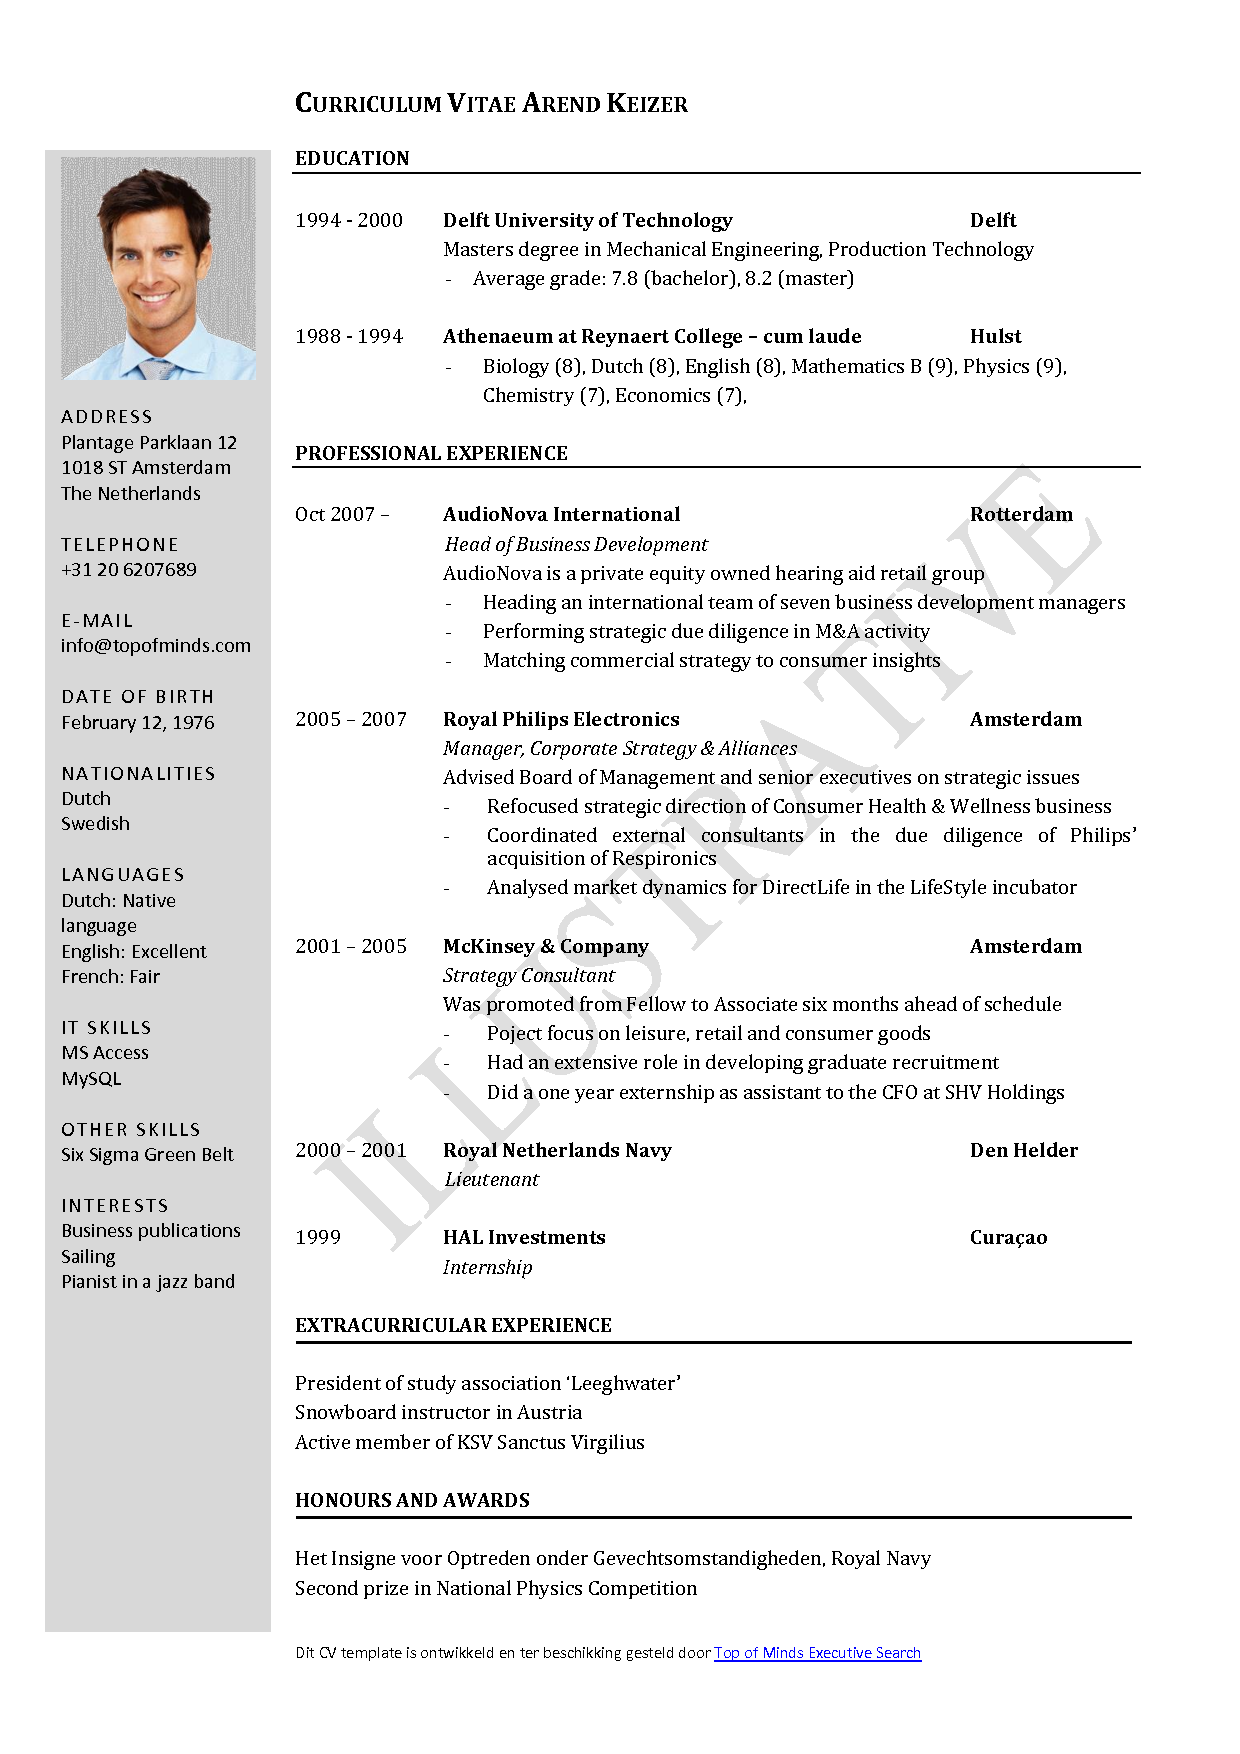 Free Curriculum Vitae Template Word | Download CV template | Cool ...